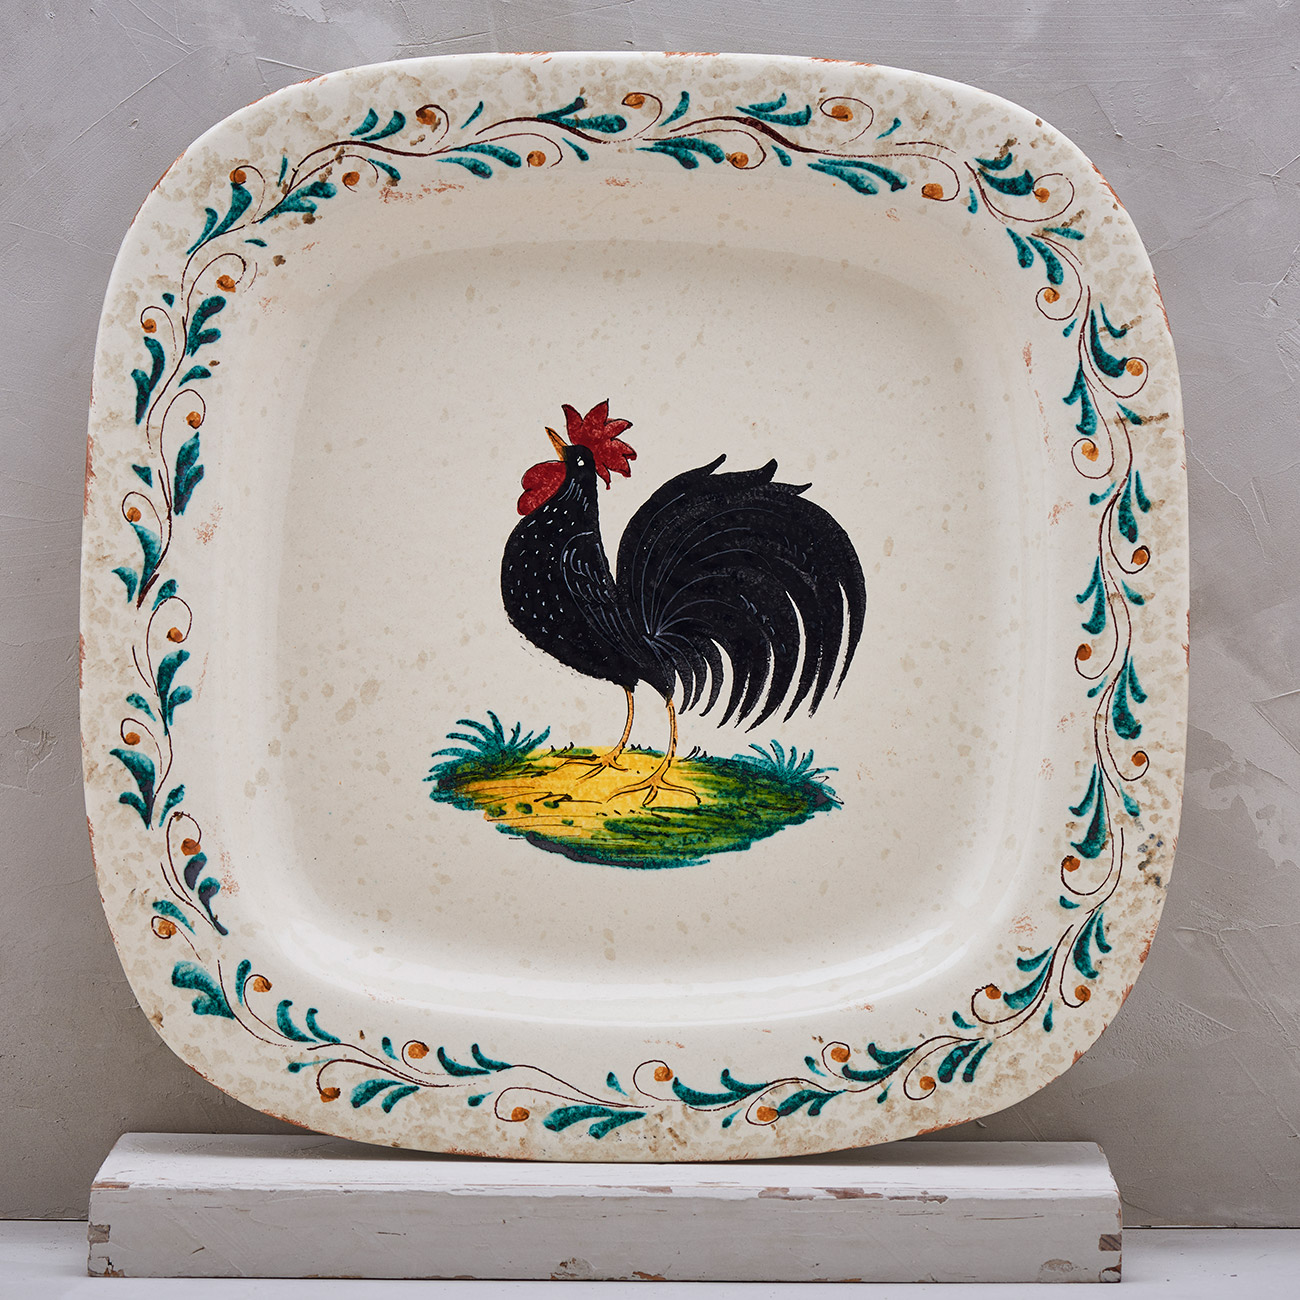 Black Rooster Tray - 40 x 40 cm 1